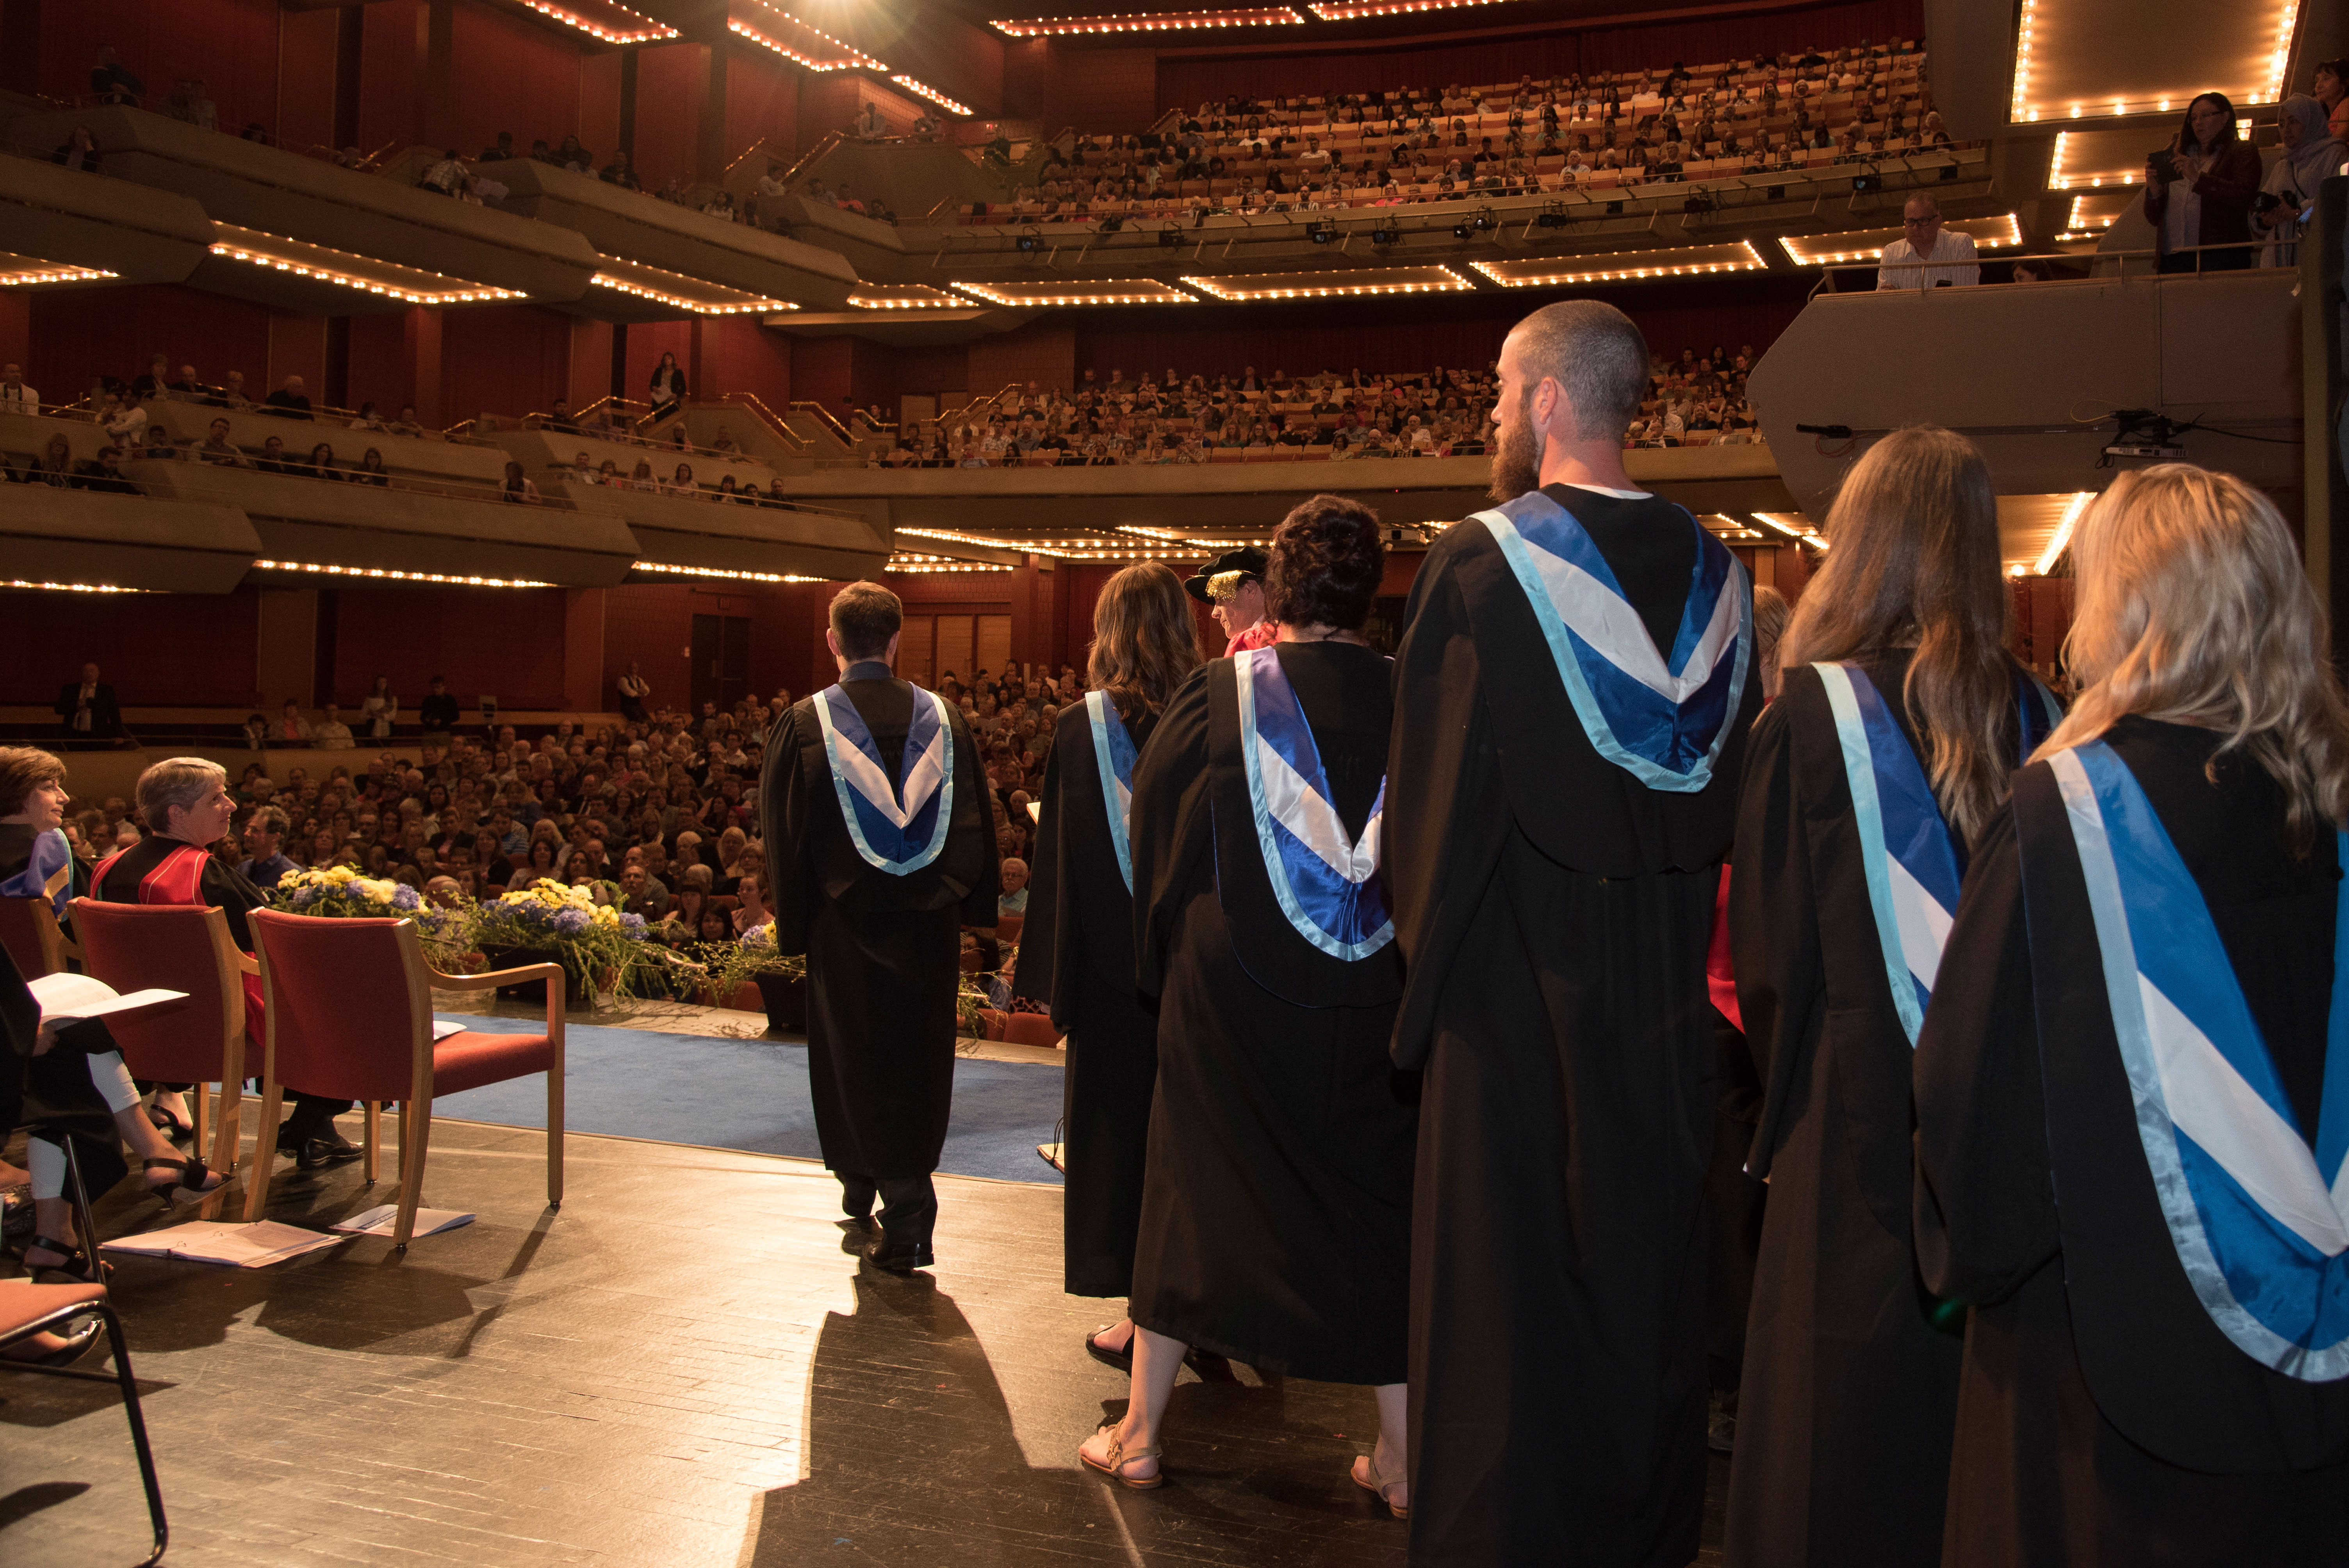 Students walking on stage during convocation ceremony